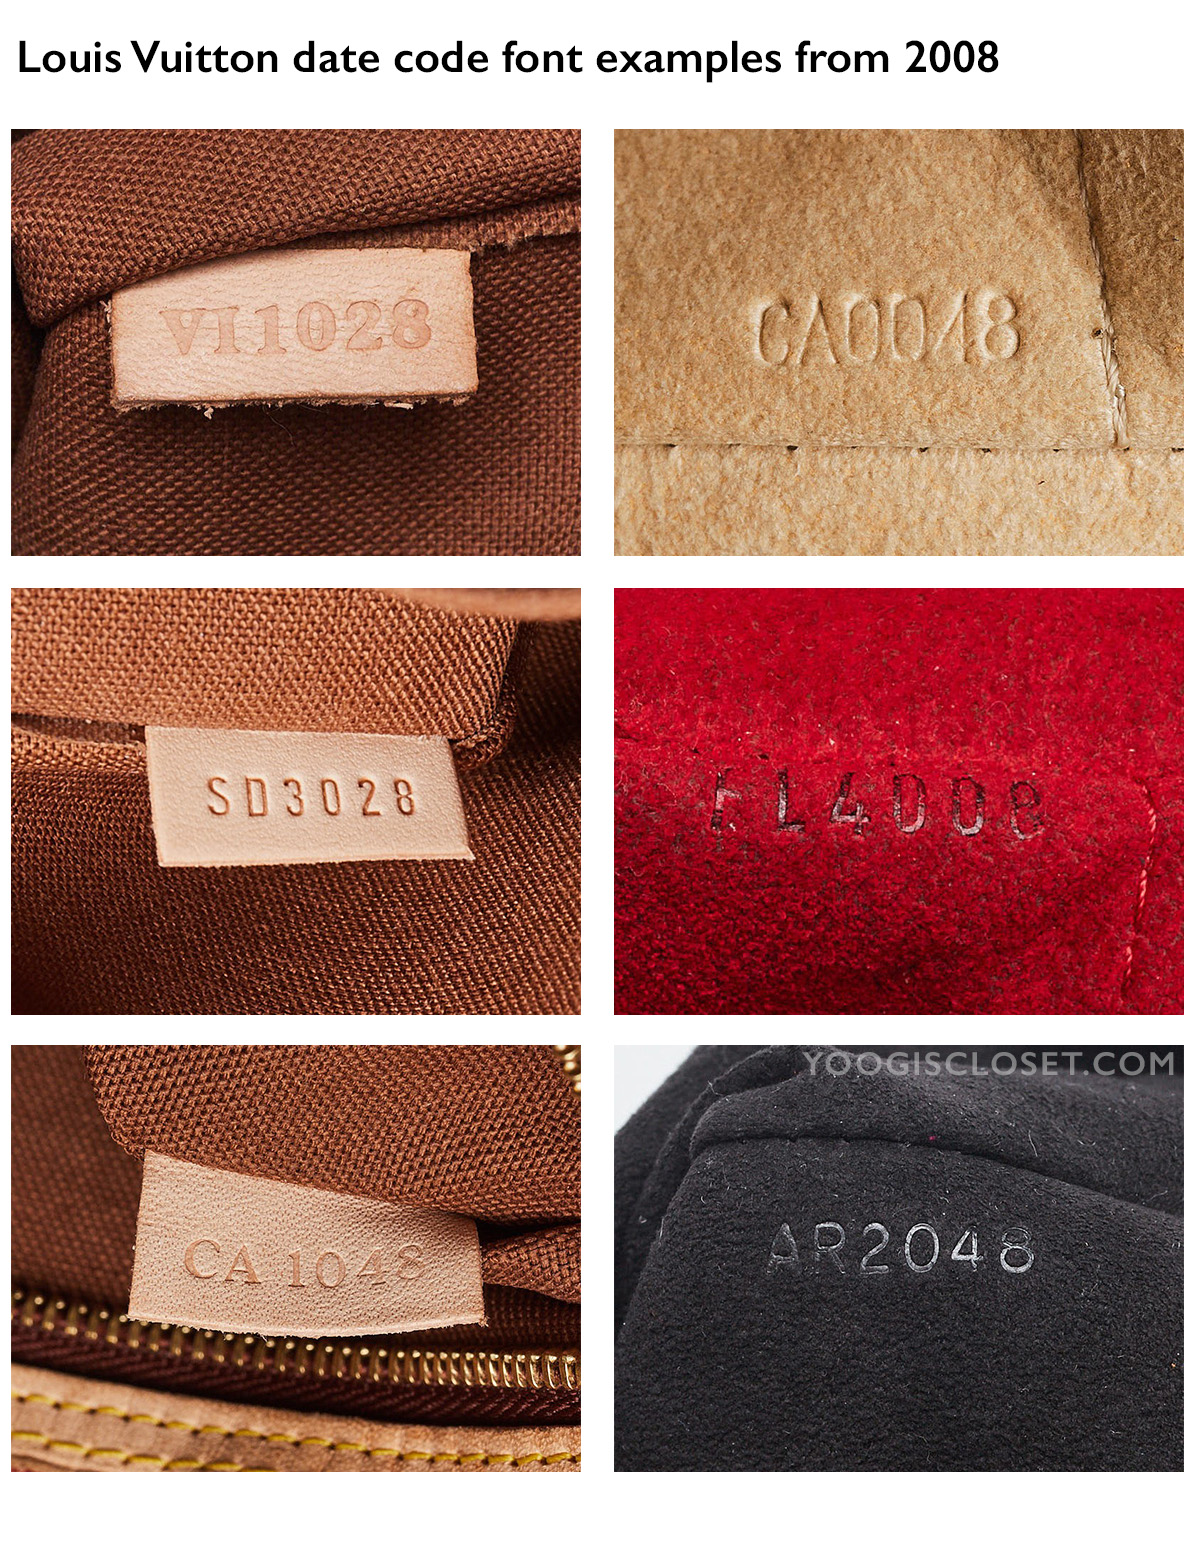 70b7b0729cf9 Louis Vuitton Date Code Examples from 2008 | Yoogi's Closet Authenticated  Pre-Owned Luxury yoogiscloset